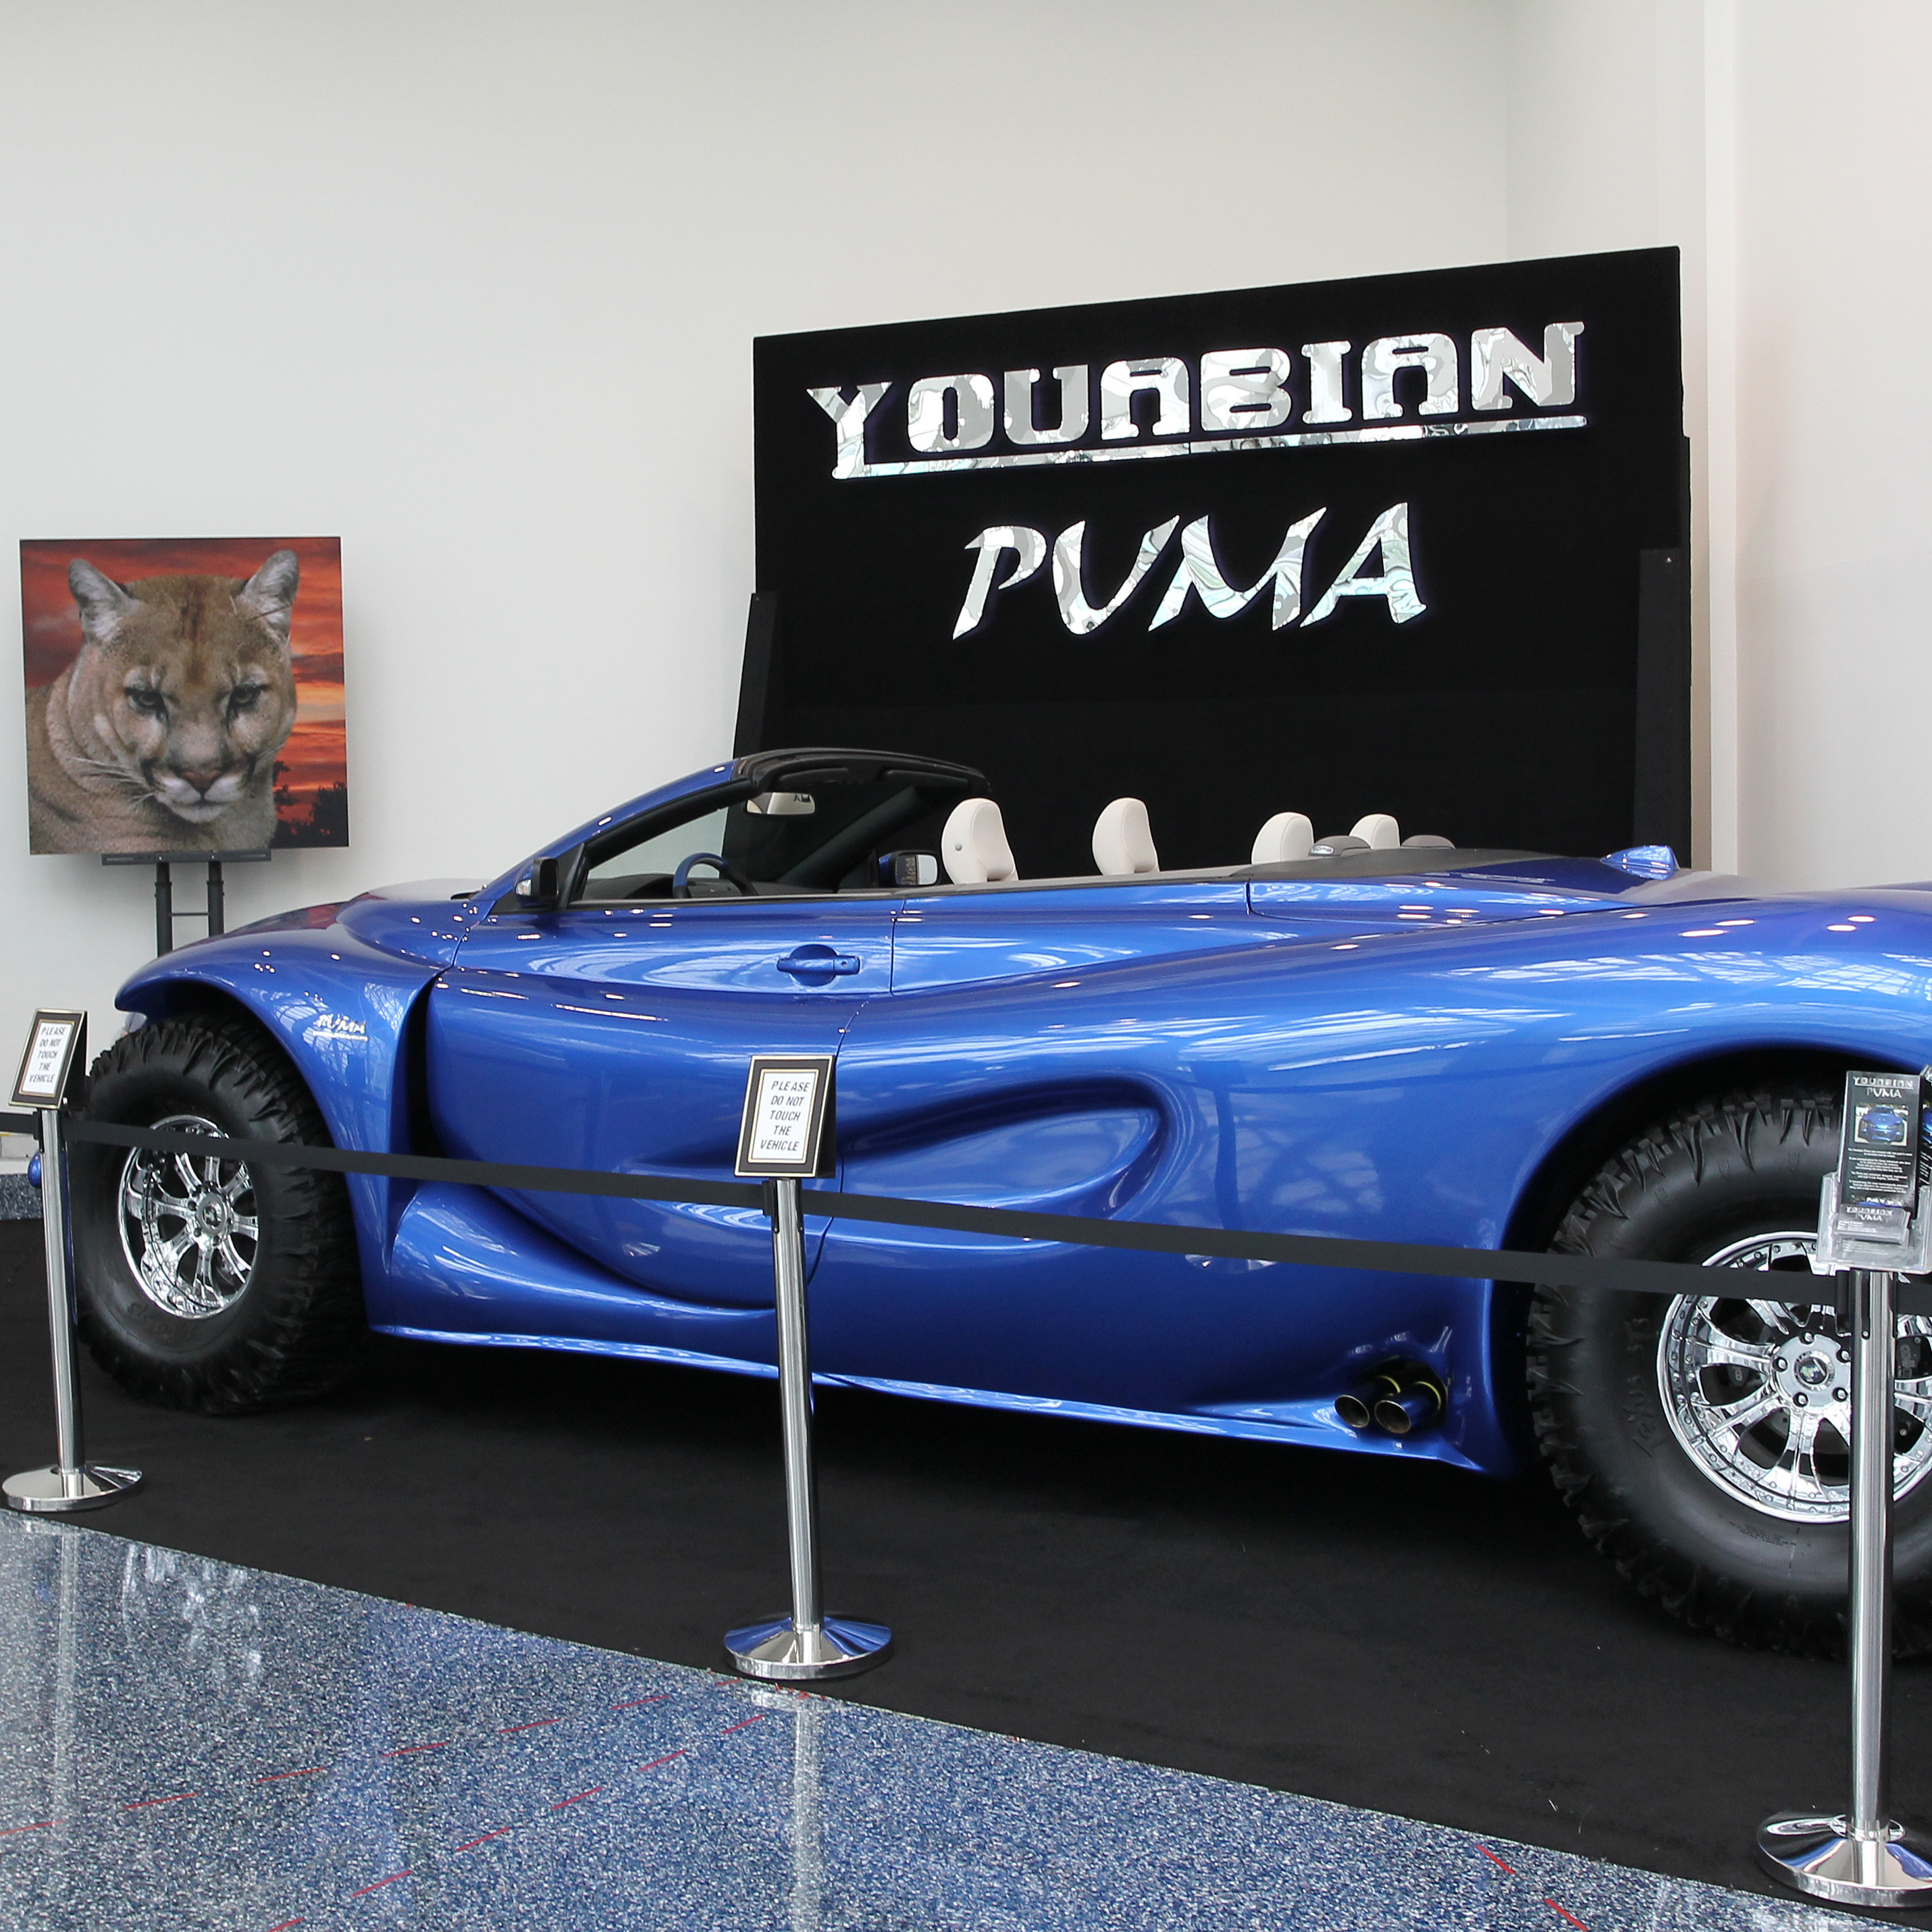 "The Youabian Puma, a 20-foot convertible that sits on 44-inch tires, has been panned by auto industry critics at the LA Auto Show. Some call it ""insane."" Other say they hope it's just a joke."